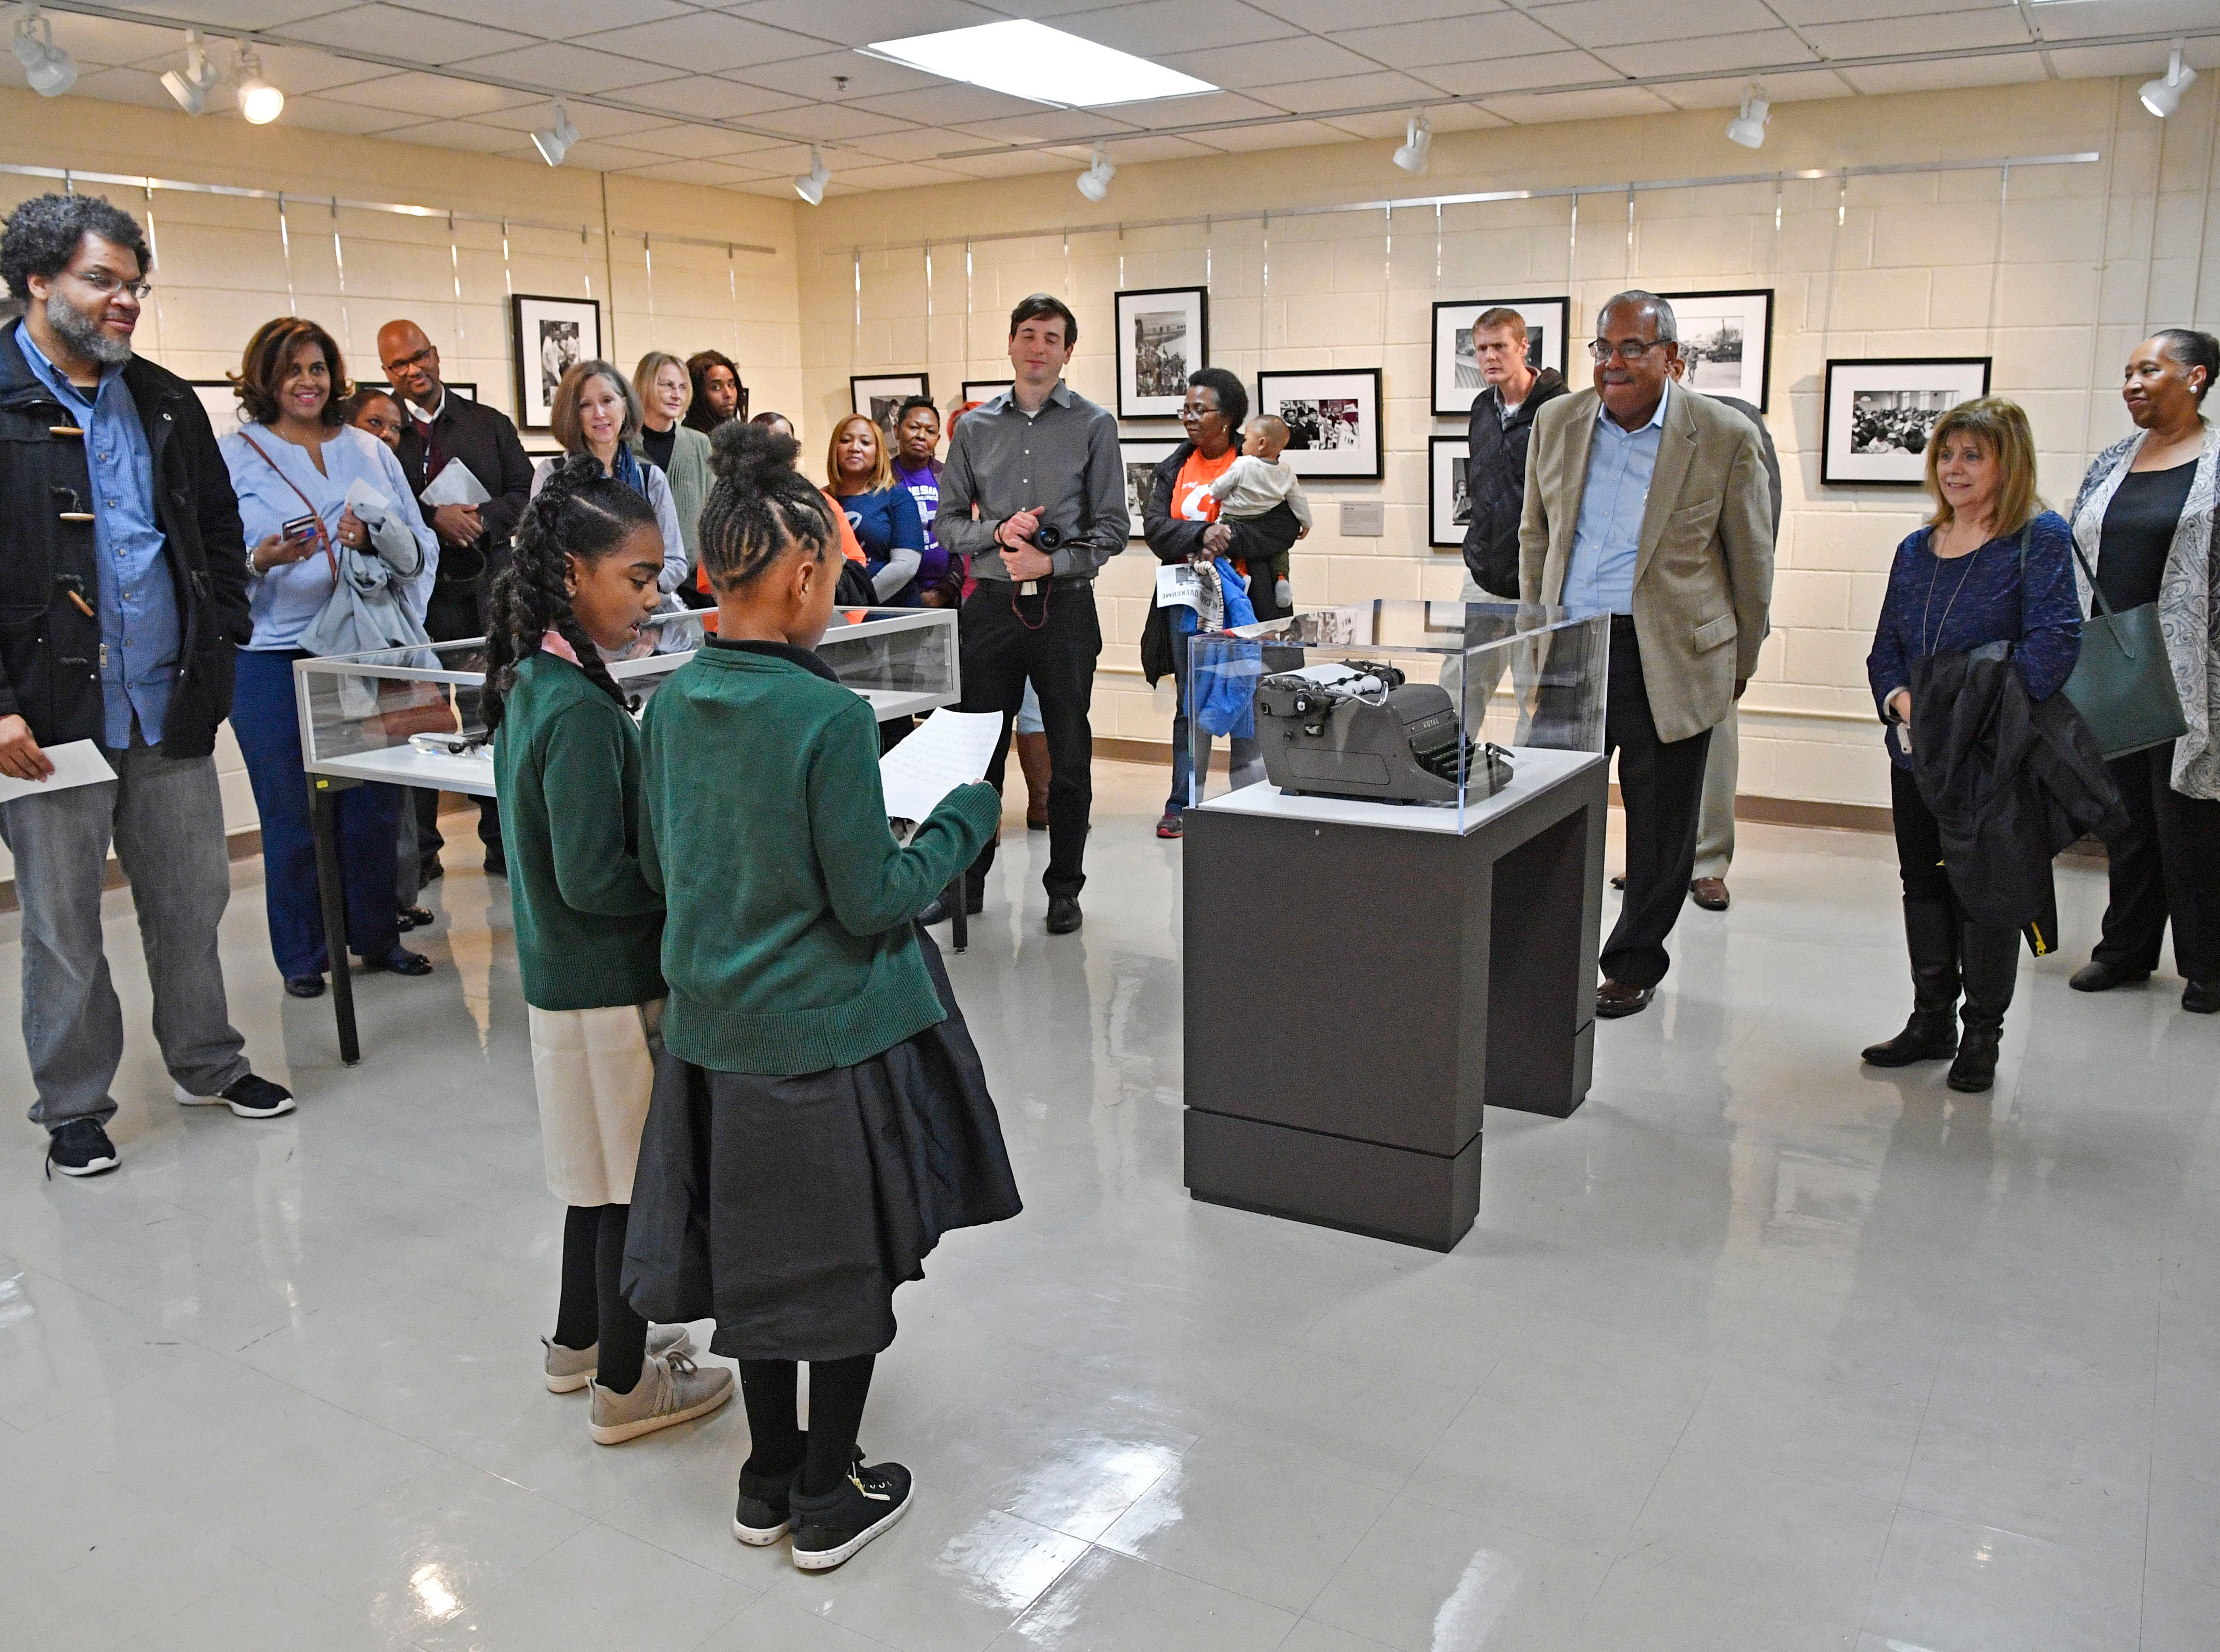 Students read an introduction to a significant part of We Shall Overcome exhibition that was presented at the Robert Churchwell Museum Magnet School. To celebrate its opening, the school hosted an assembly that featured remarks by the principal and a conversation with several participants, including Lajuanda Street Harley, Kwame Lillard, Rip Patton, and Gloria McKissack. Friday Nov. 30, 2018, in Nashville, Tenn.